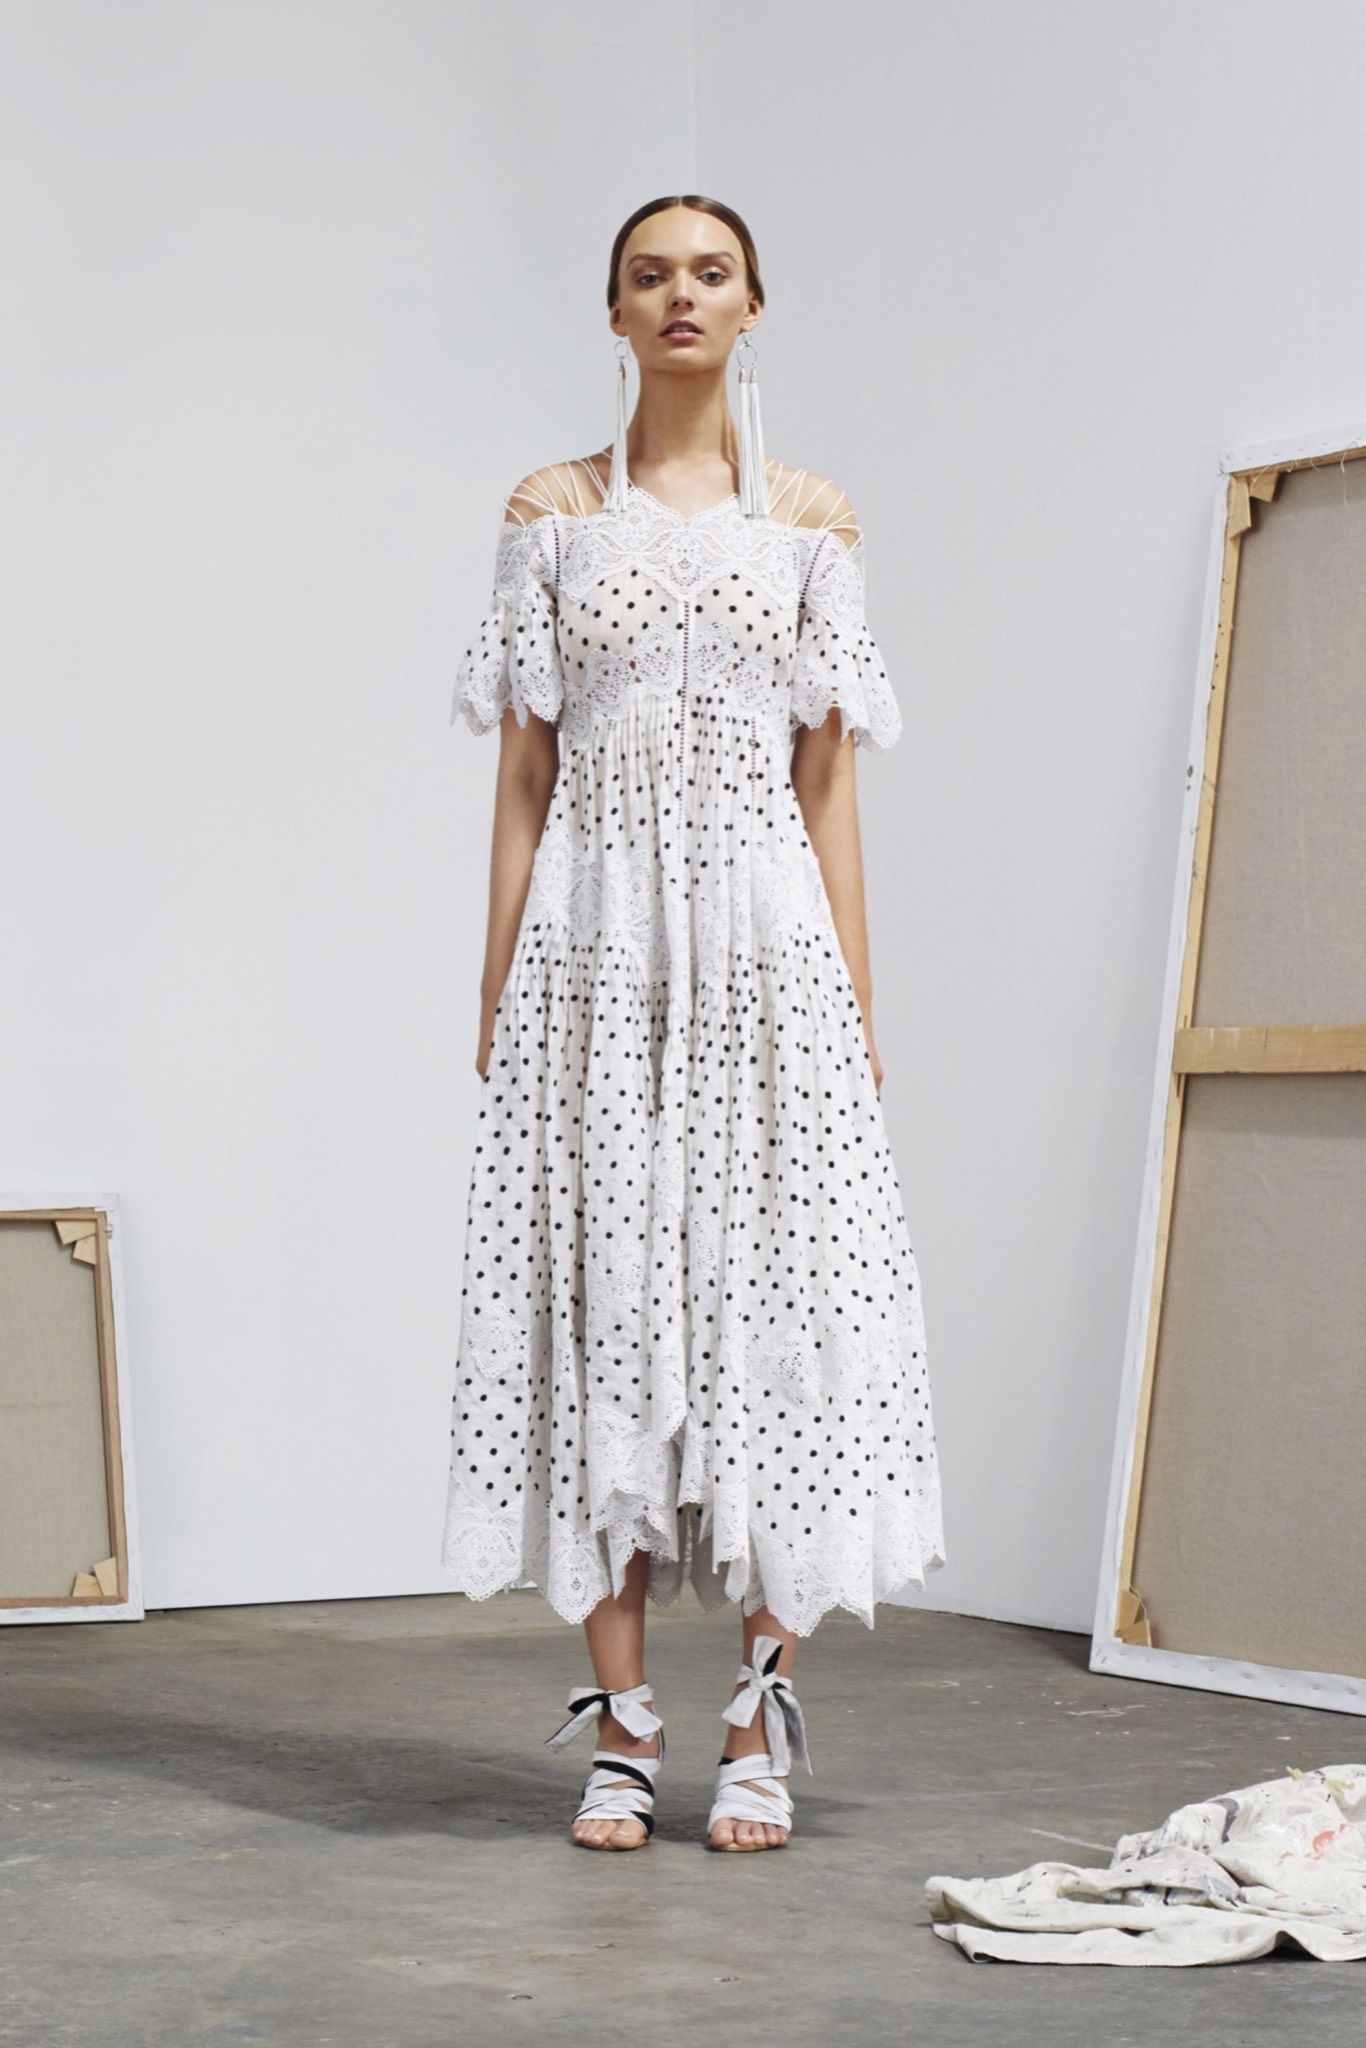 Zimmermann resort collection gallery style eyelet